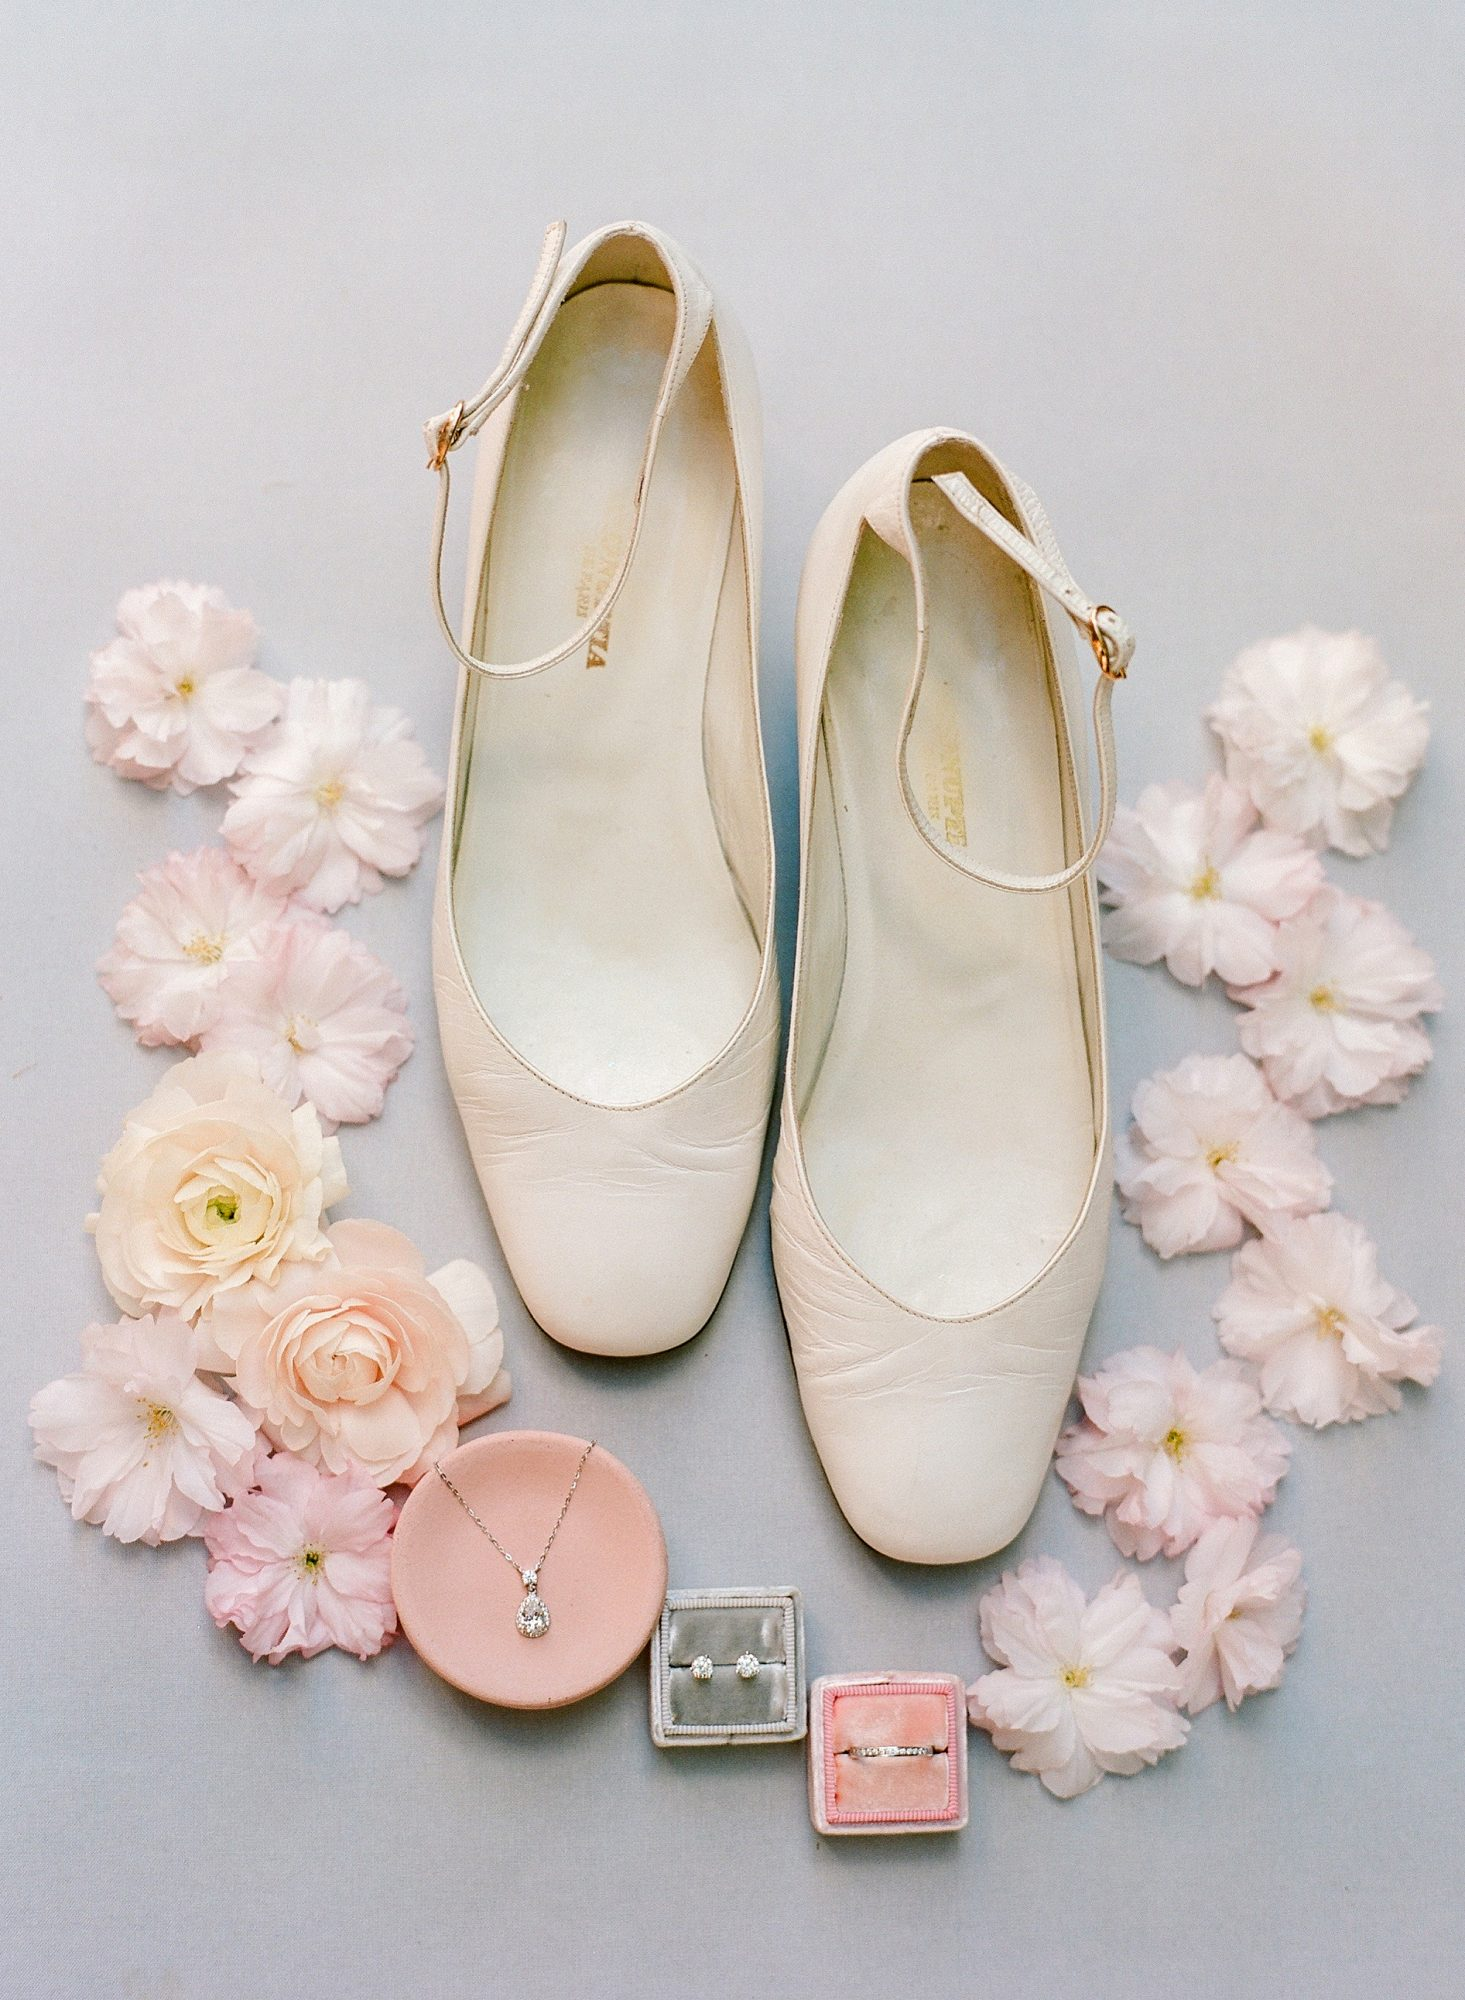 mechelle julia wedding nude shoes and jewelry